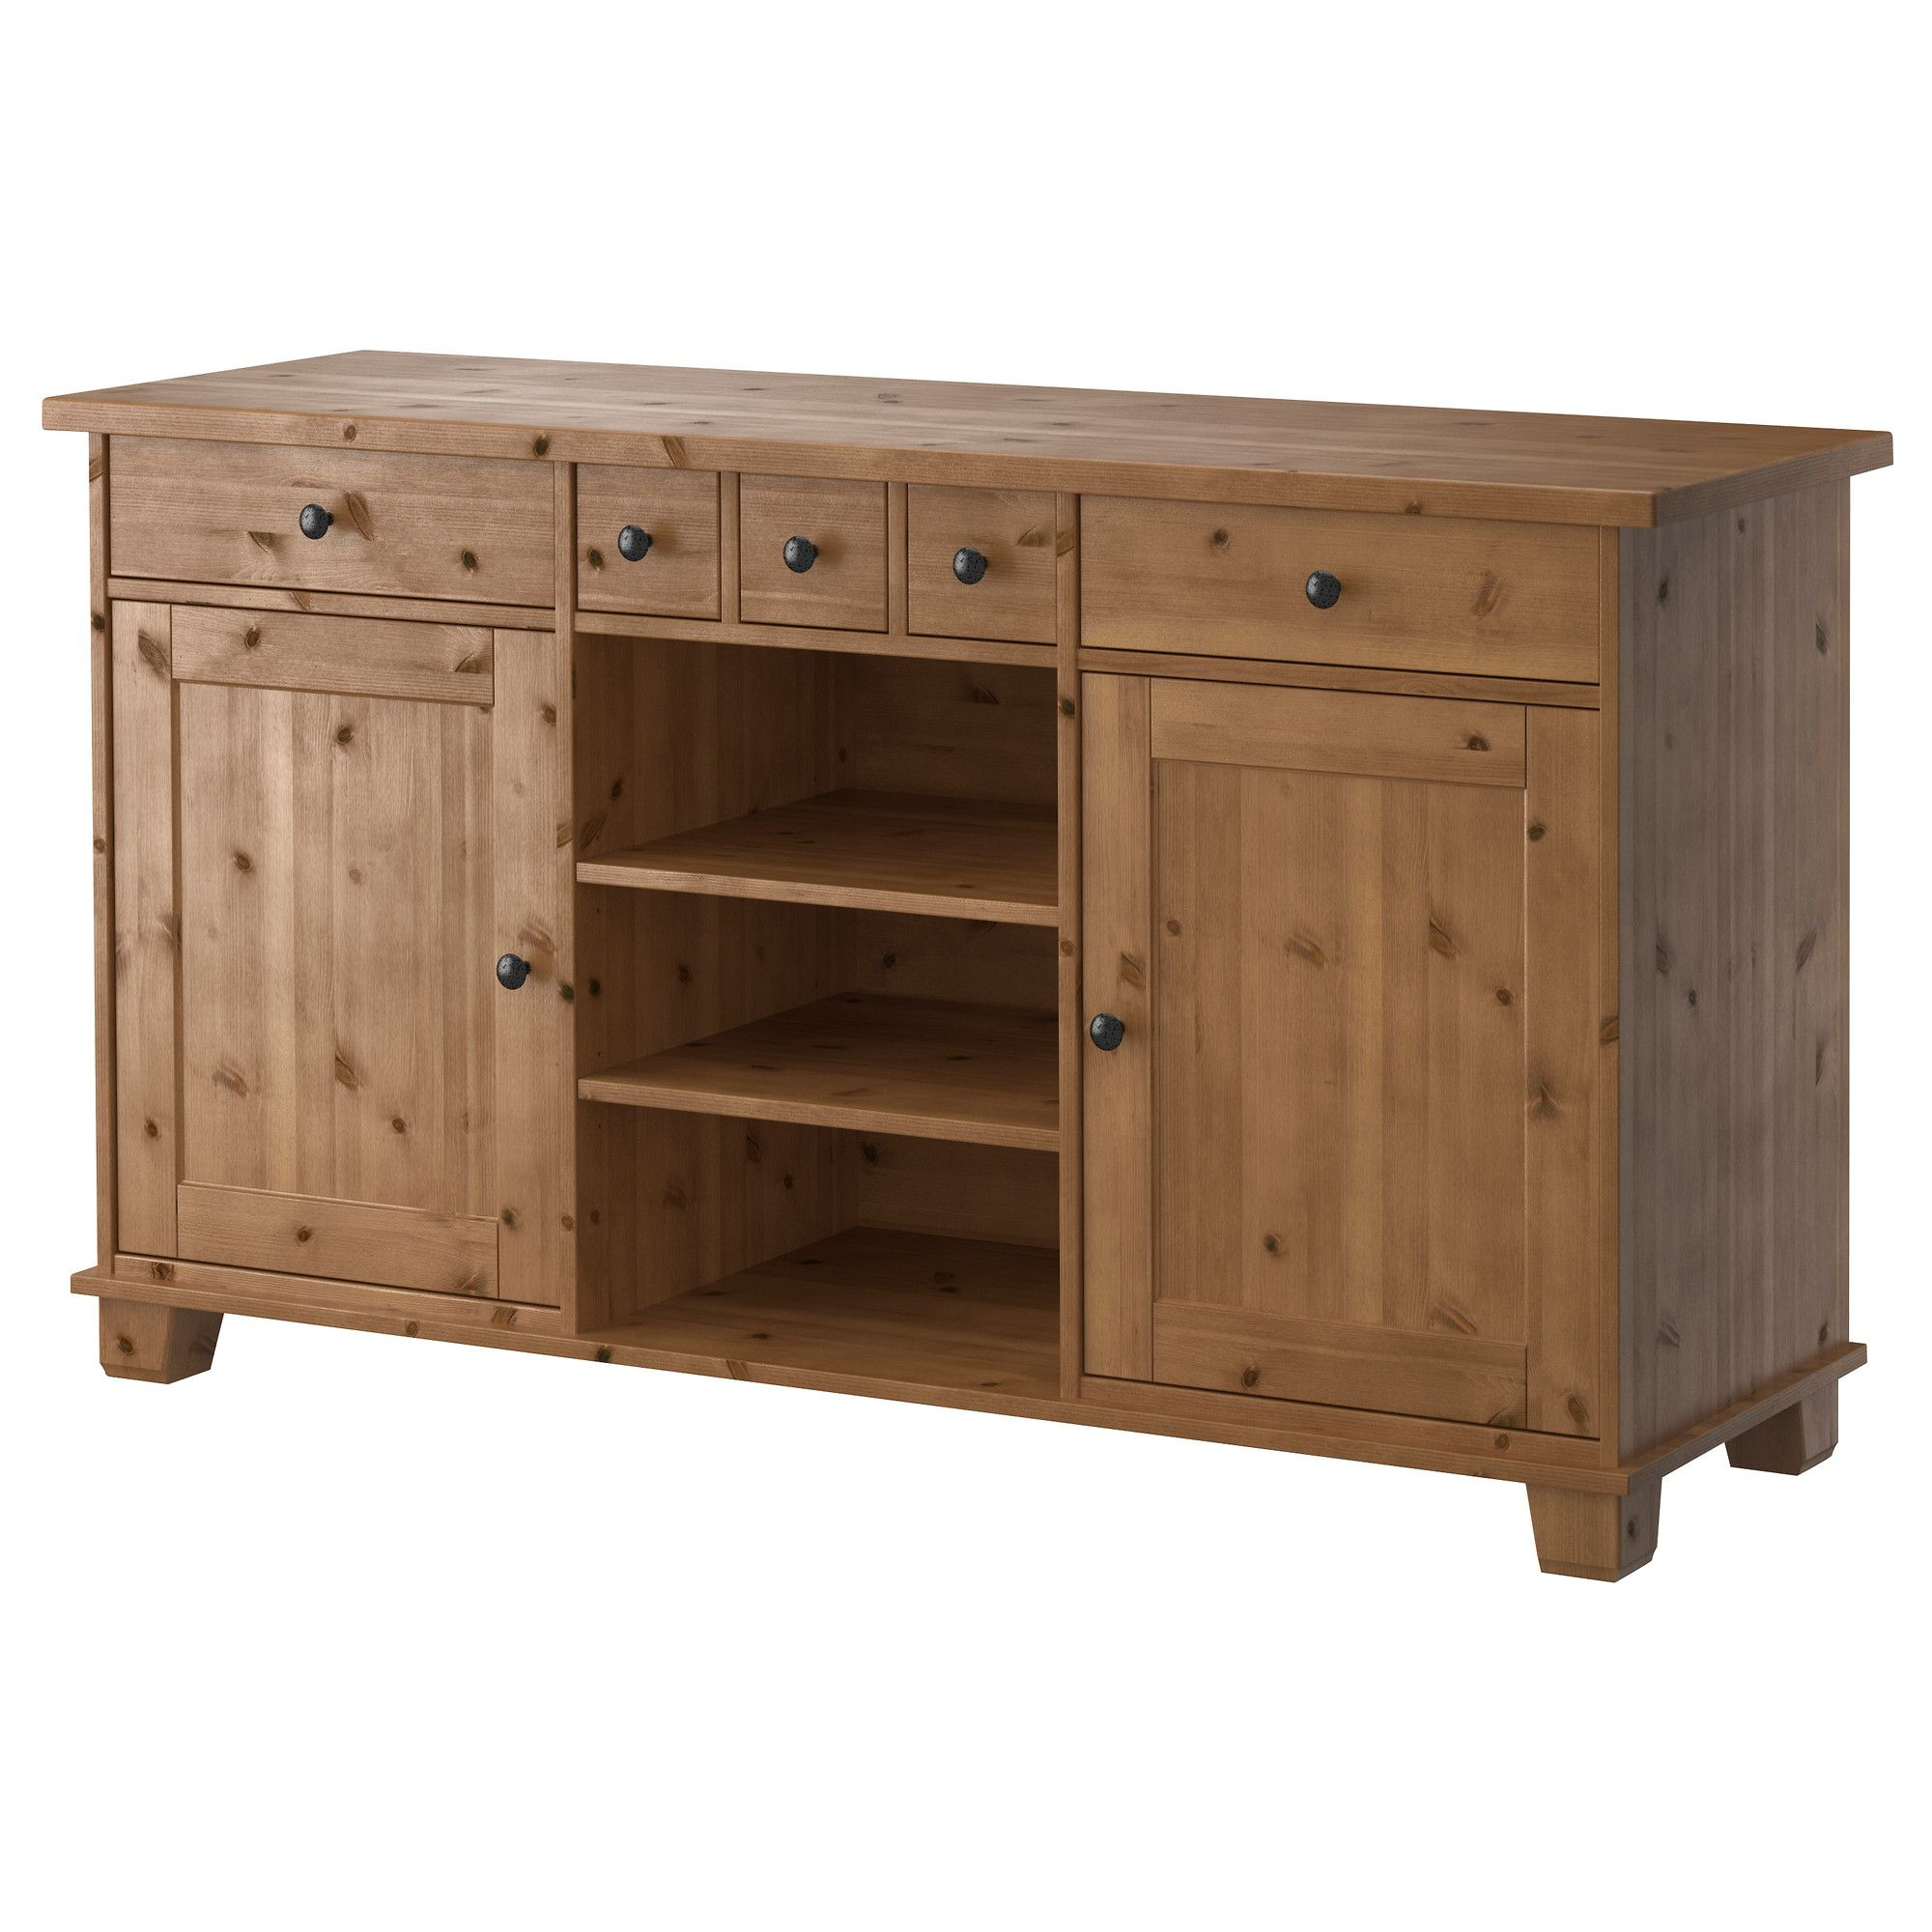 Shop For Furniture, Lighting, Home Accessories & More | Home Inside Contemporary Wooden Buffets With One Side Door Storage Cabinets And Two Drawers (View 6 of 30)